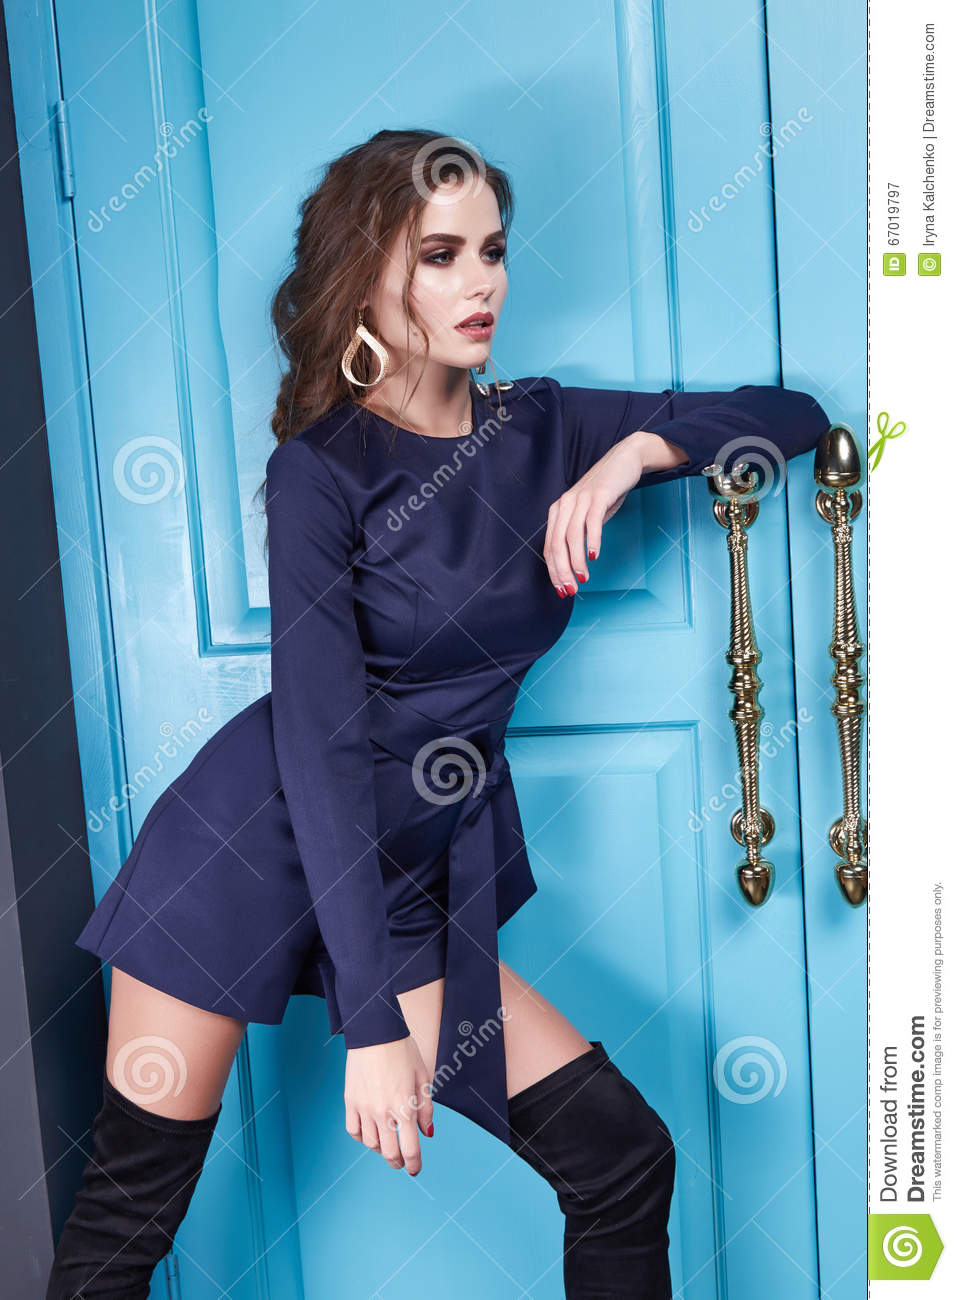 Beauty Woman Clothes Makeup Fashion Style Stock Image